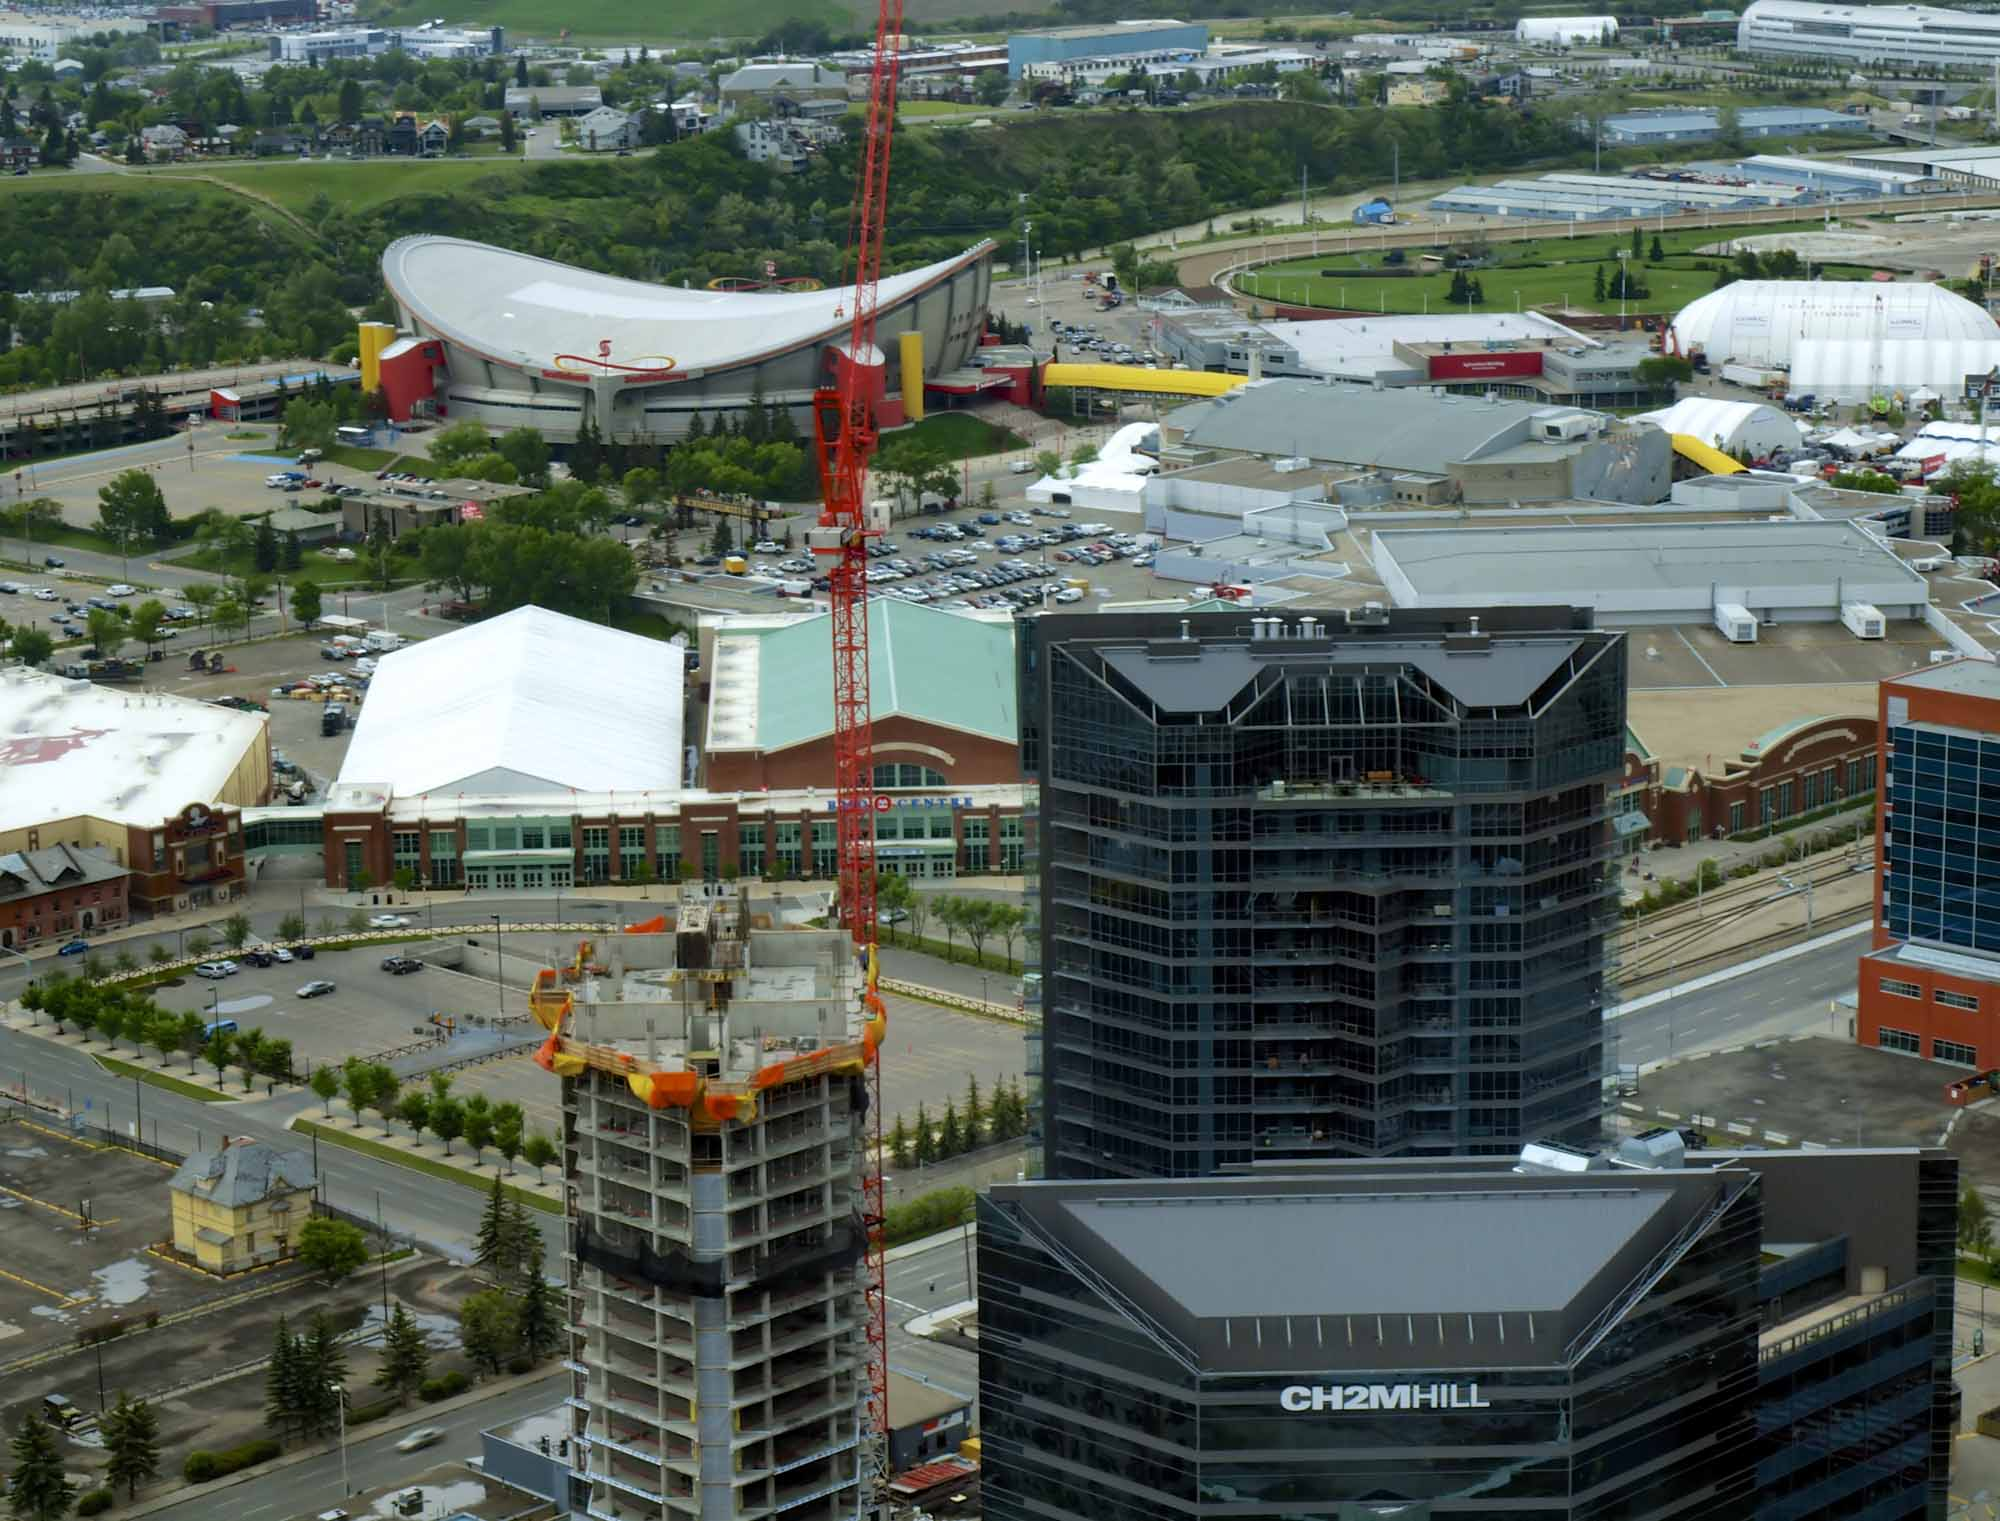 Aerial view of Calgary Stampede Grounds